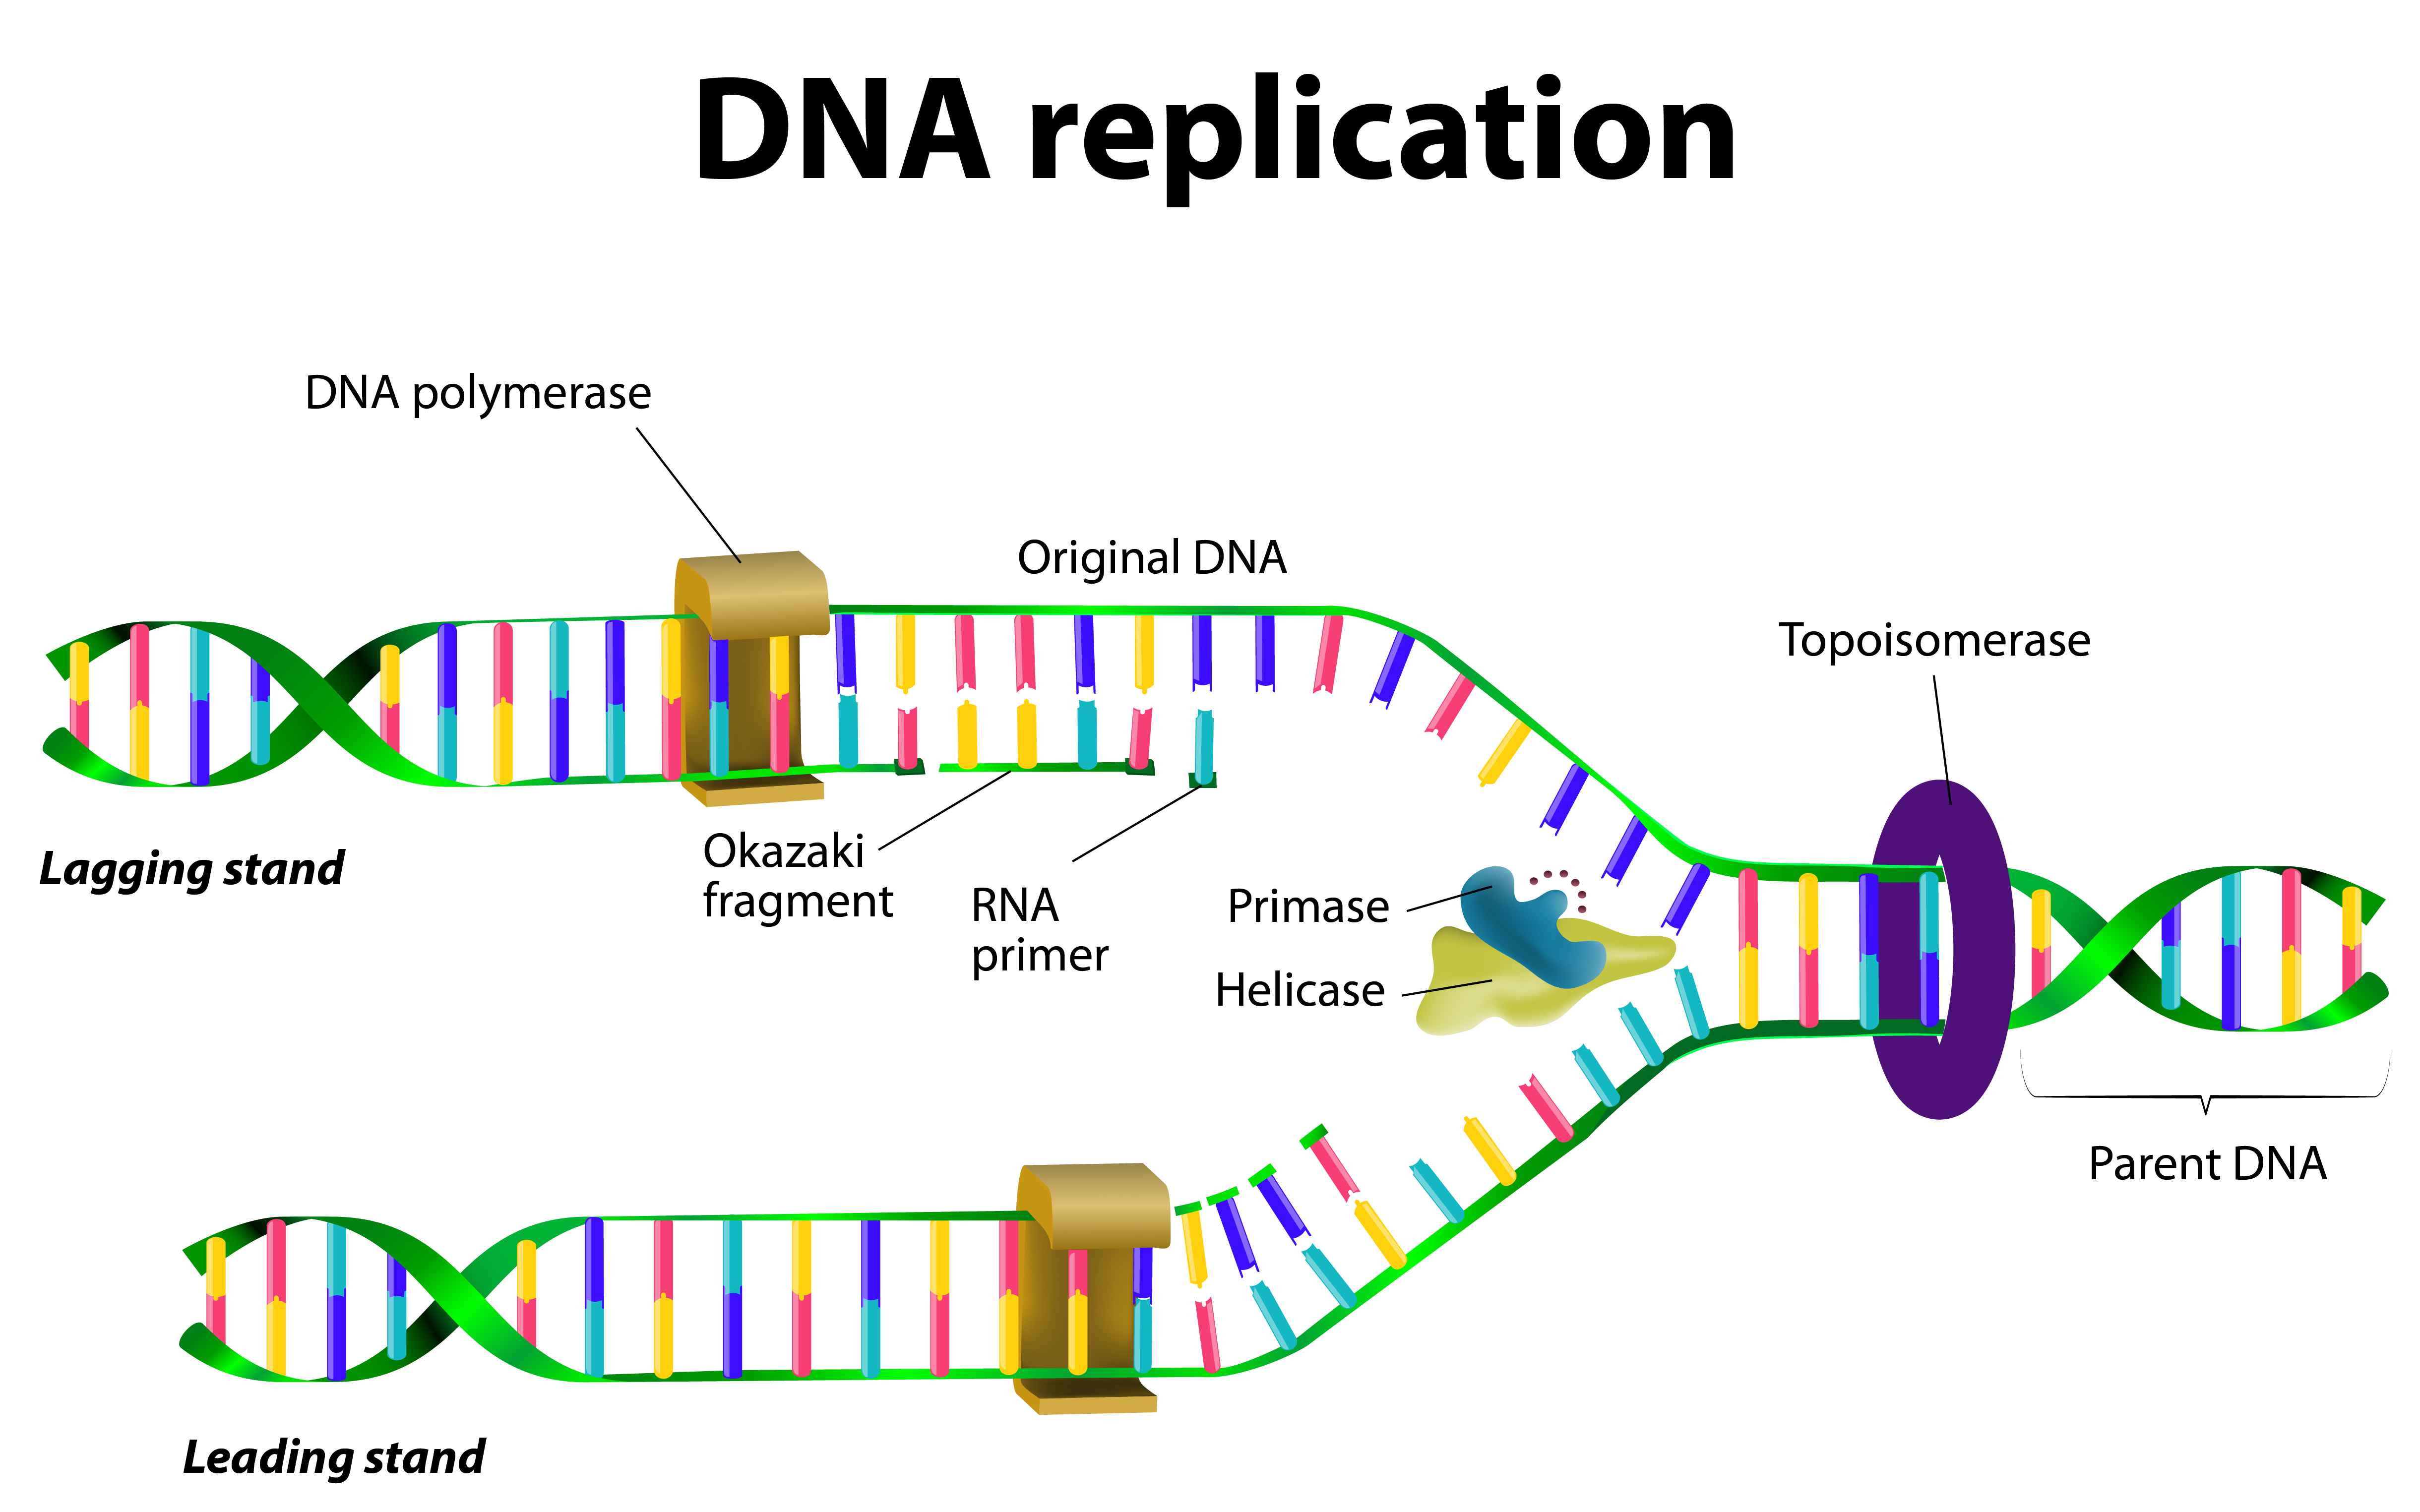 study unravels steps in mutation that causes friedreich 39 s ataxia friedreich 39 s ataxia news. Black Bedroom Furniture Sets. Home Design Ideas